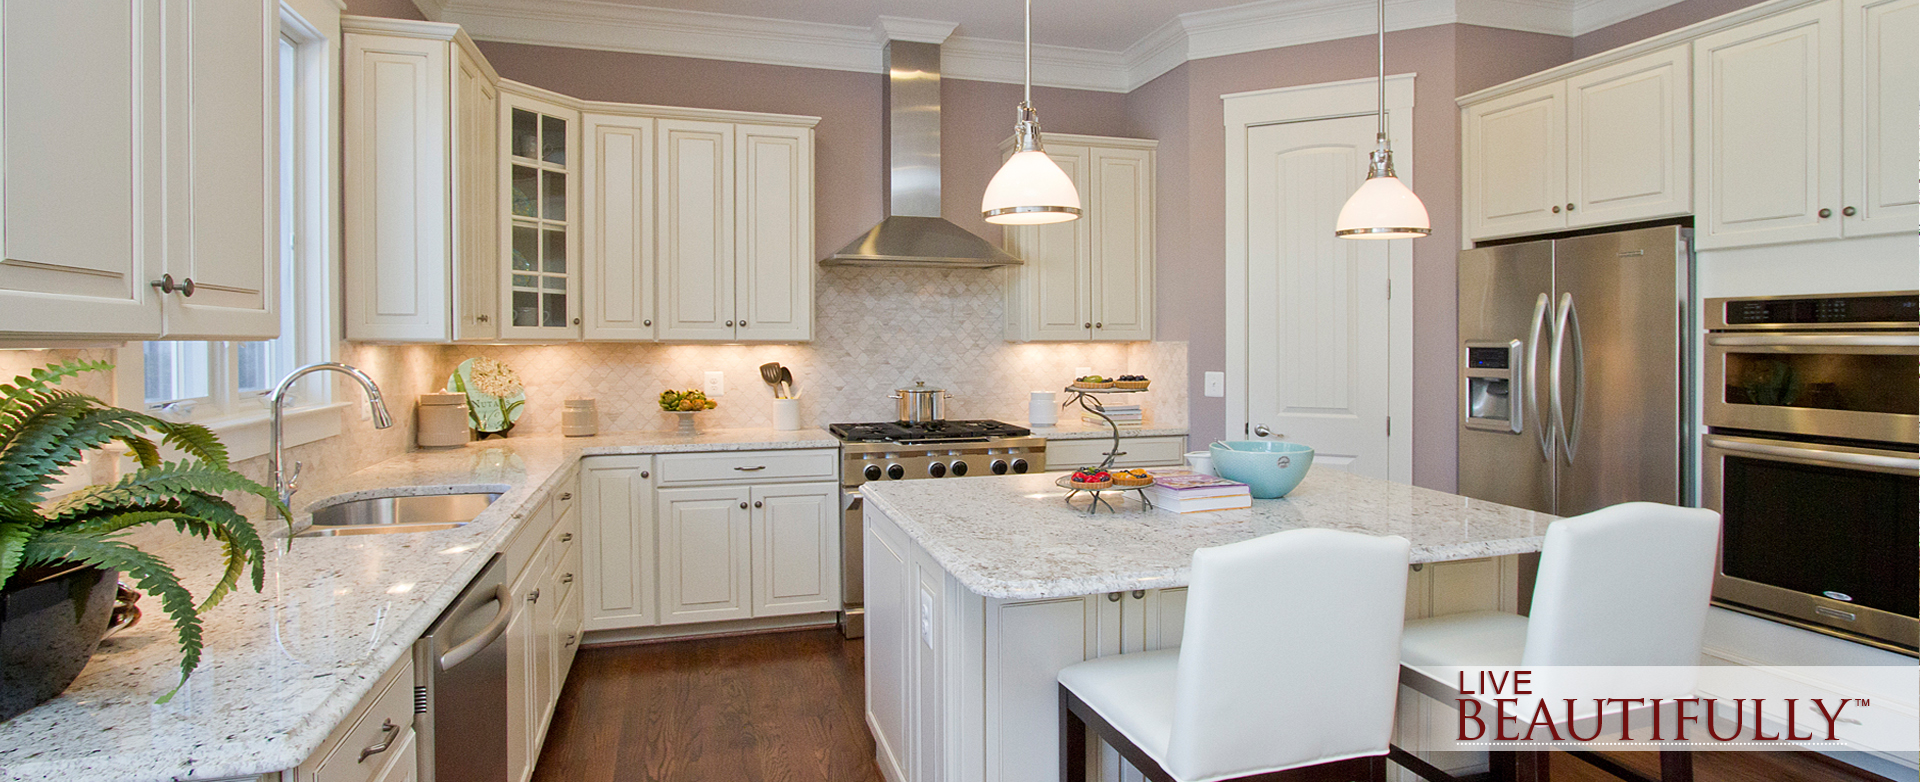 kitchenheader1